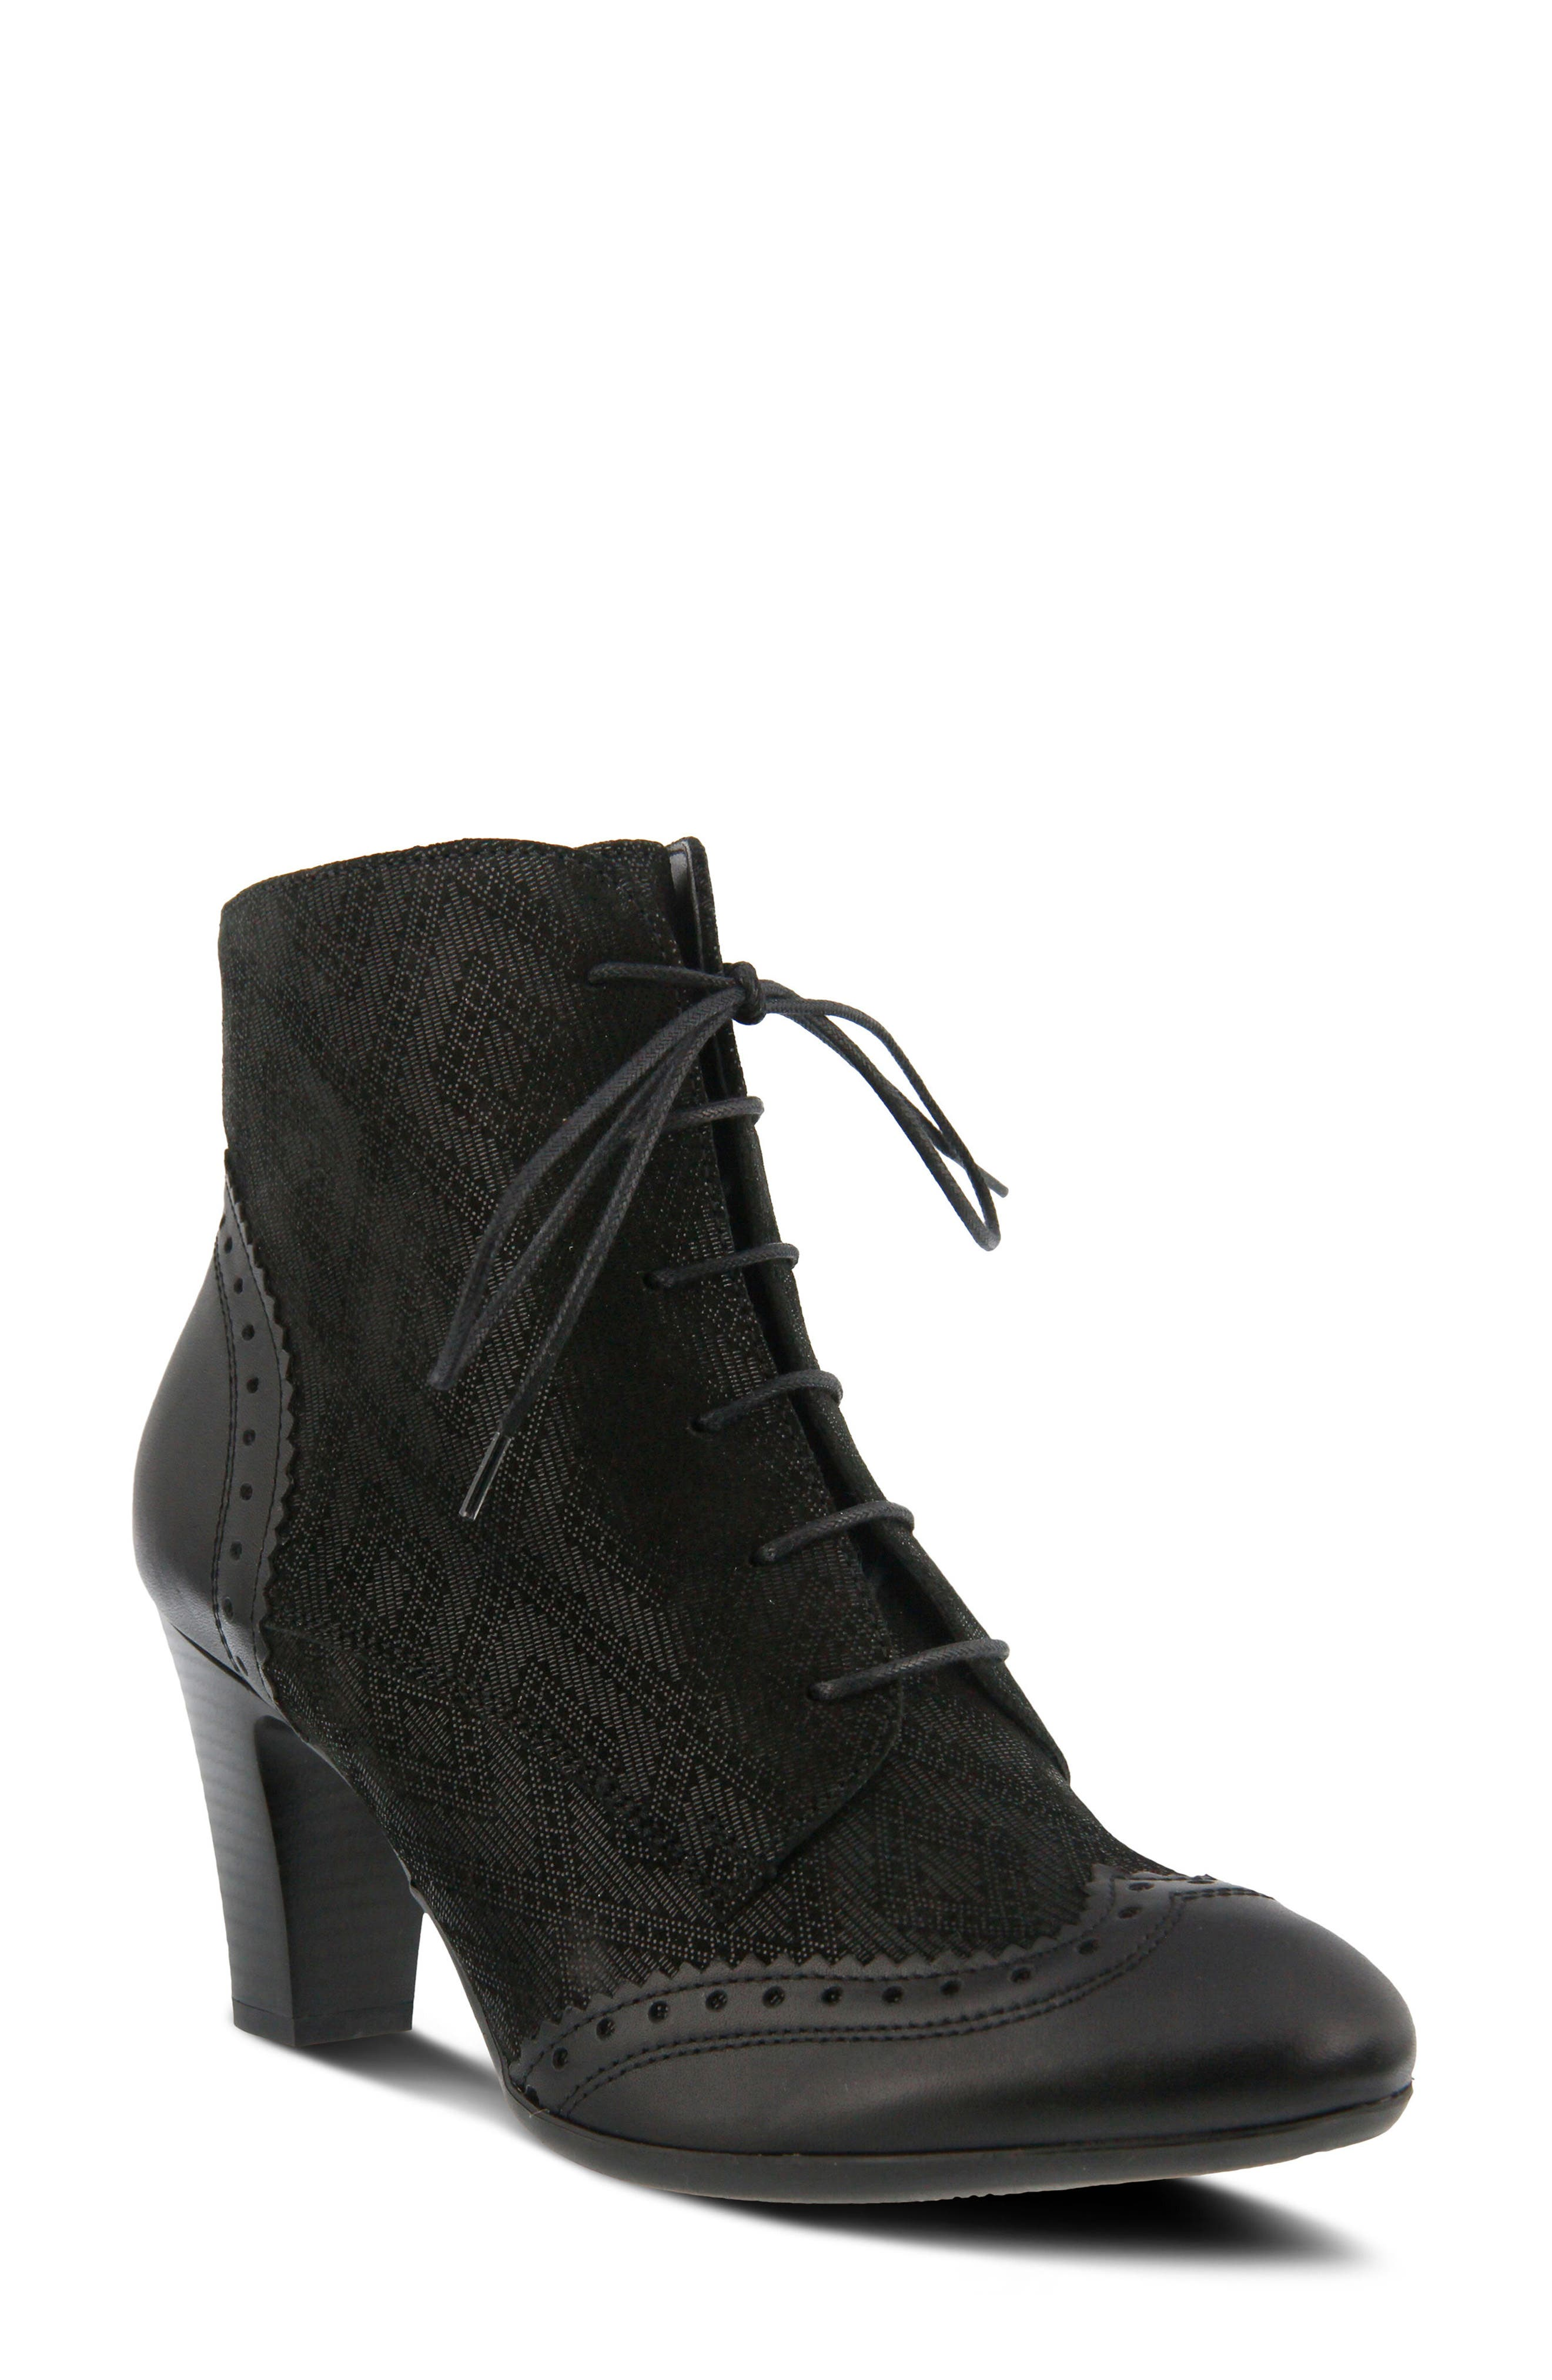 Alternate Image 1 Selected - Spring Step Gem Lace-Up Bootie (Women)